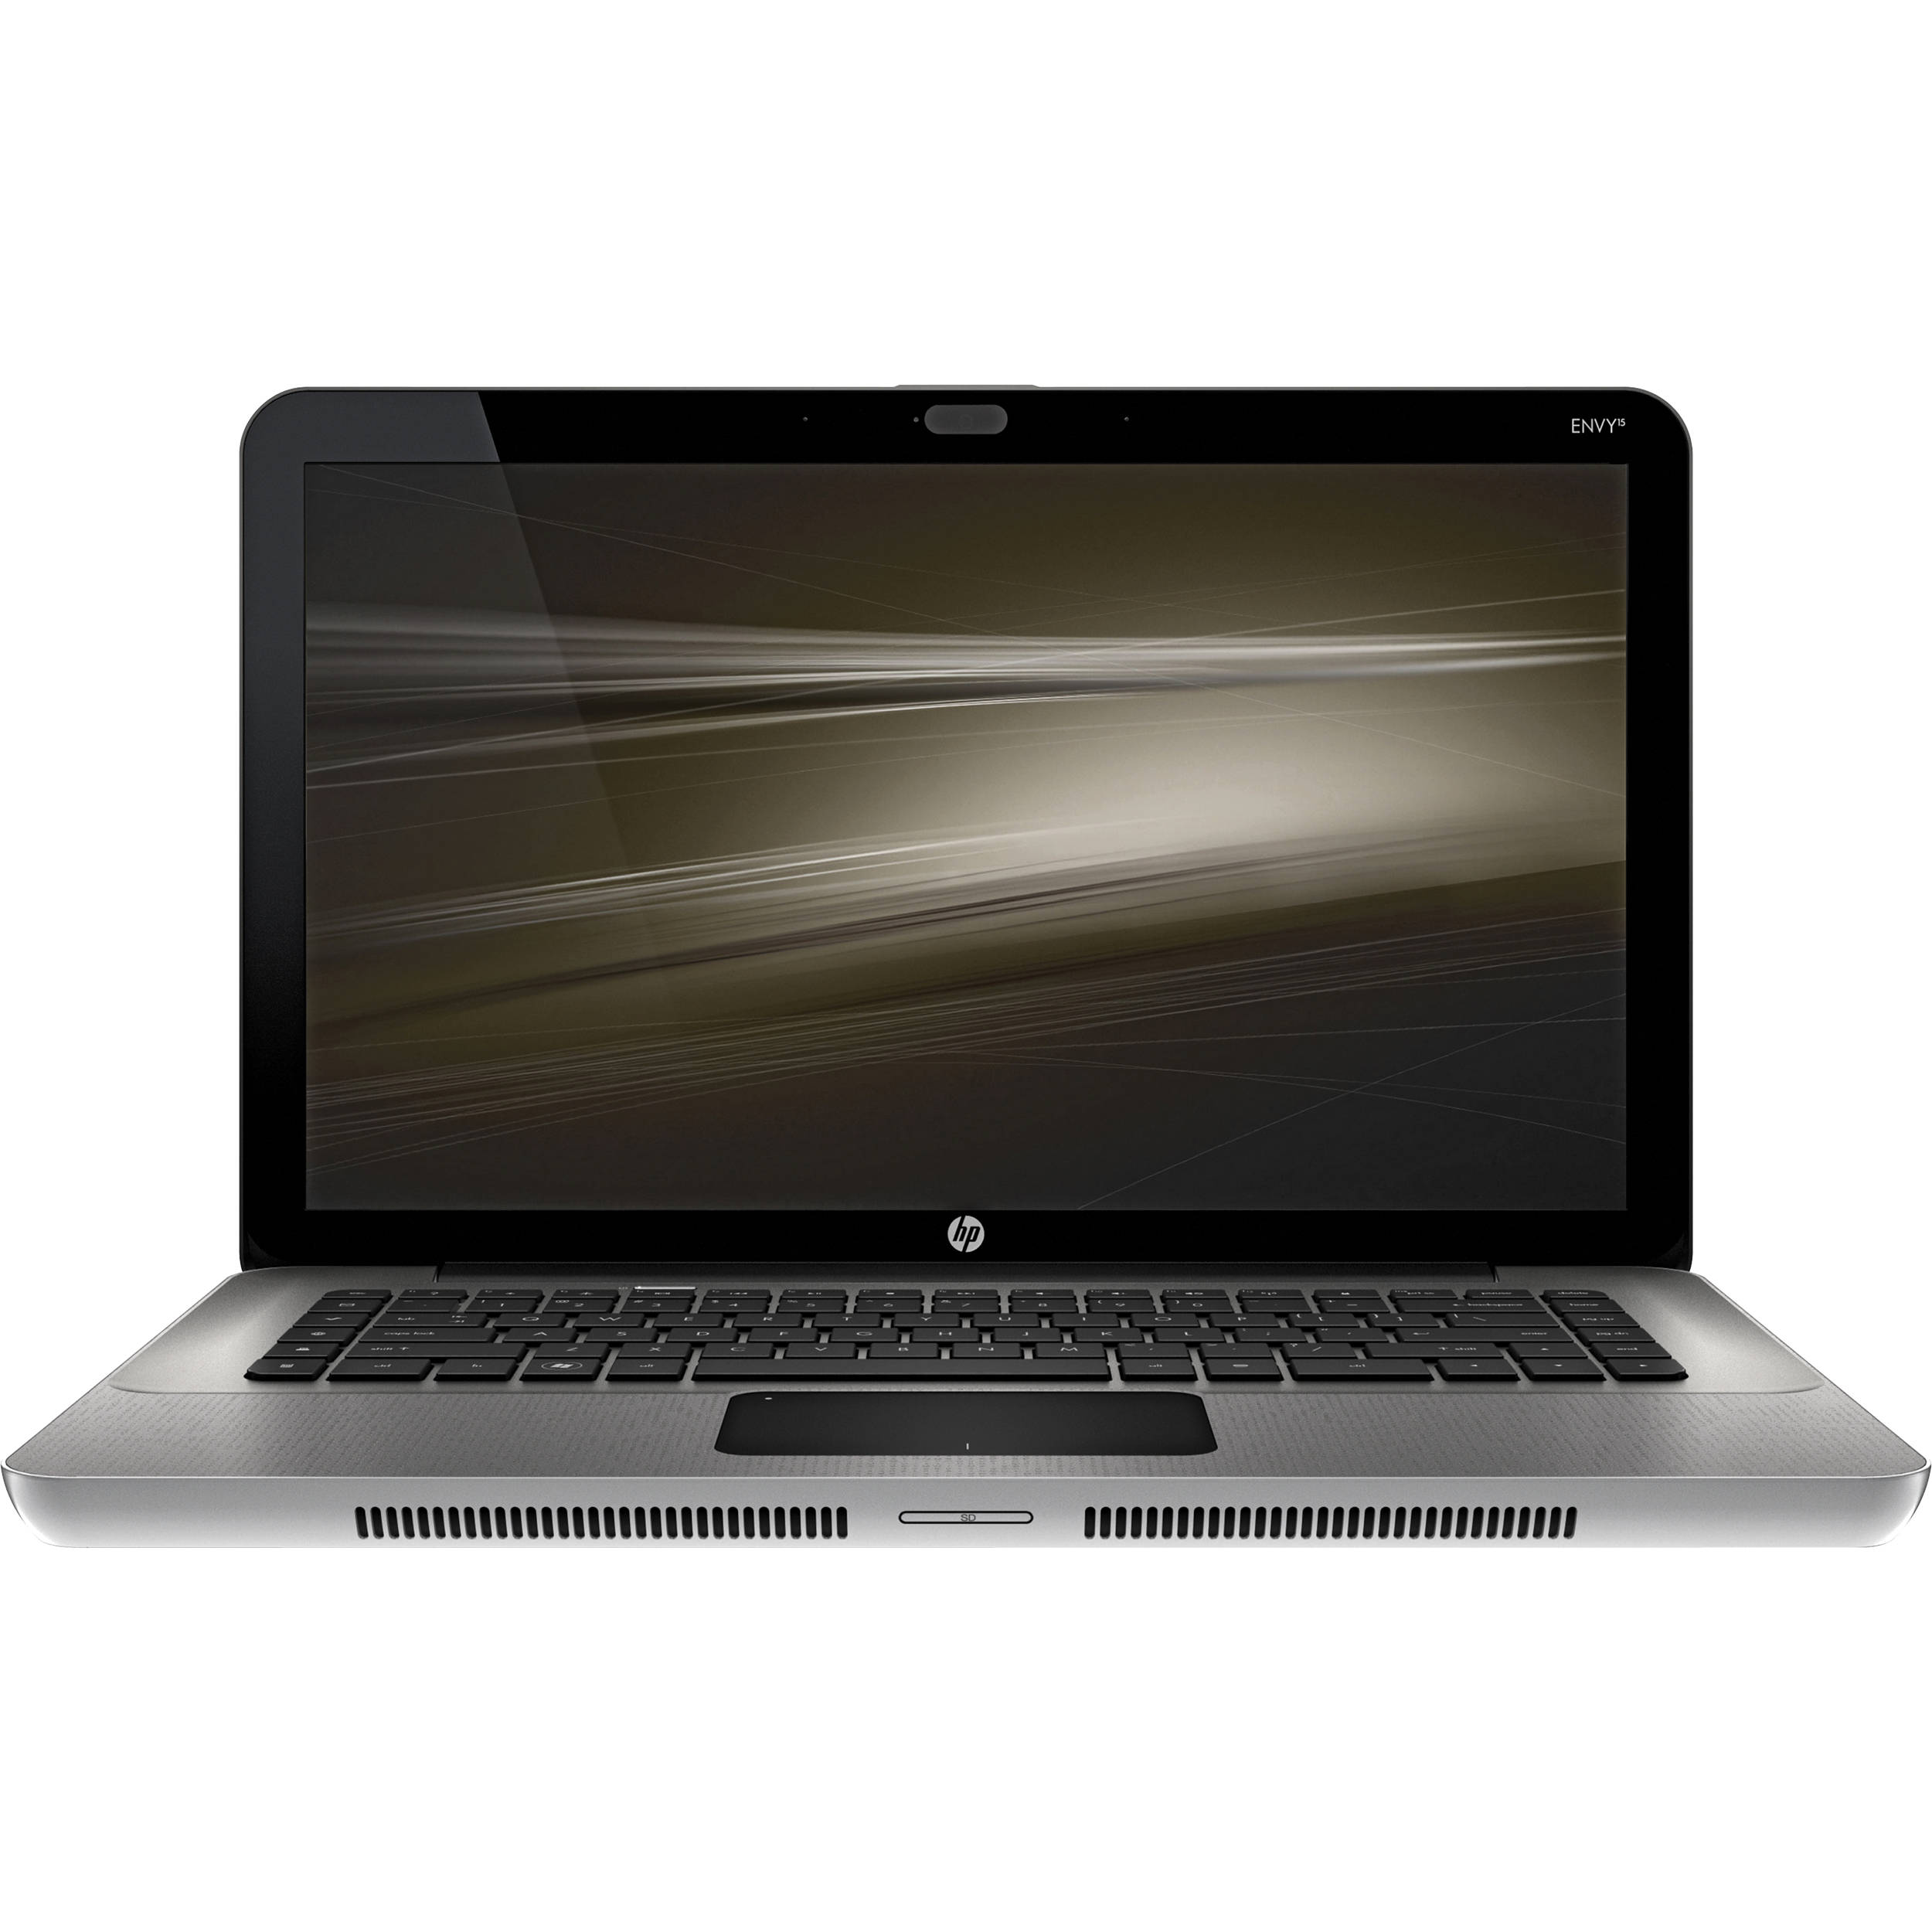 HP Envy 15-1050nr Notebook USB TV Tuner Linux